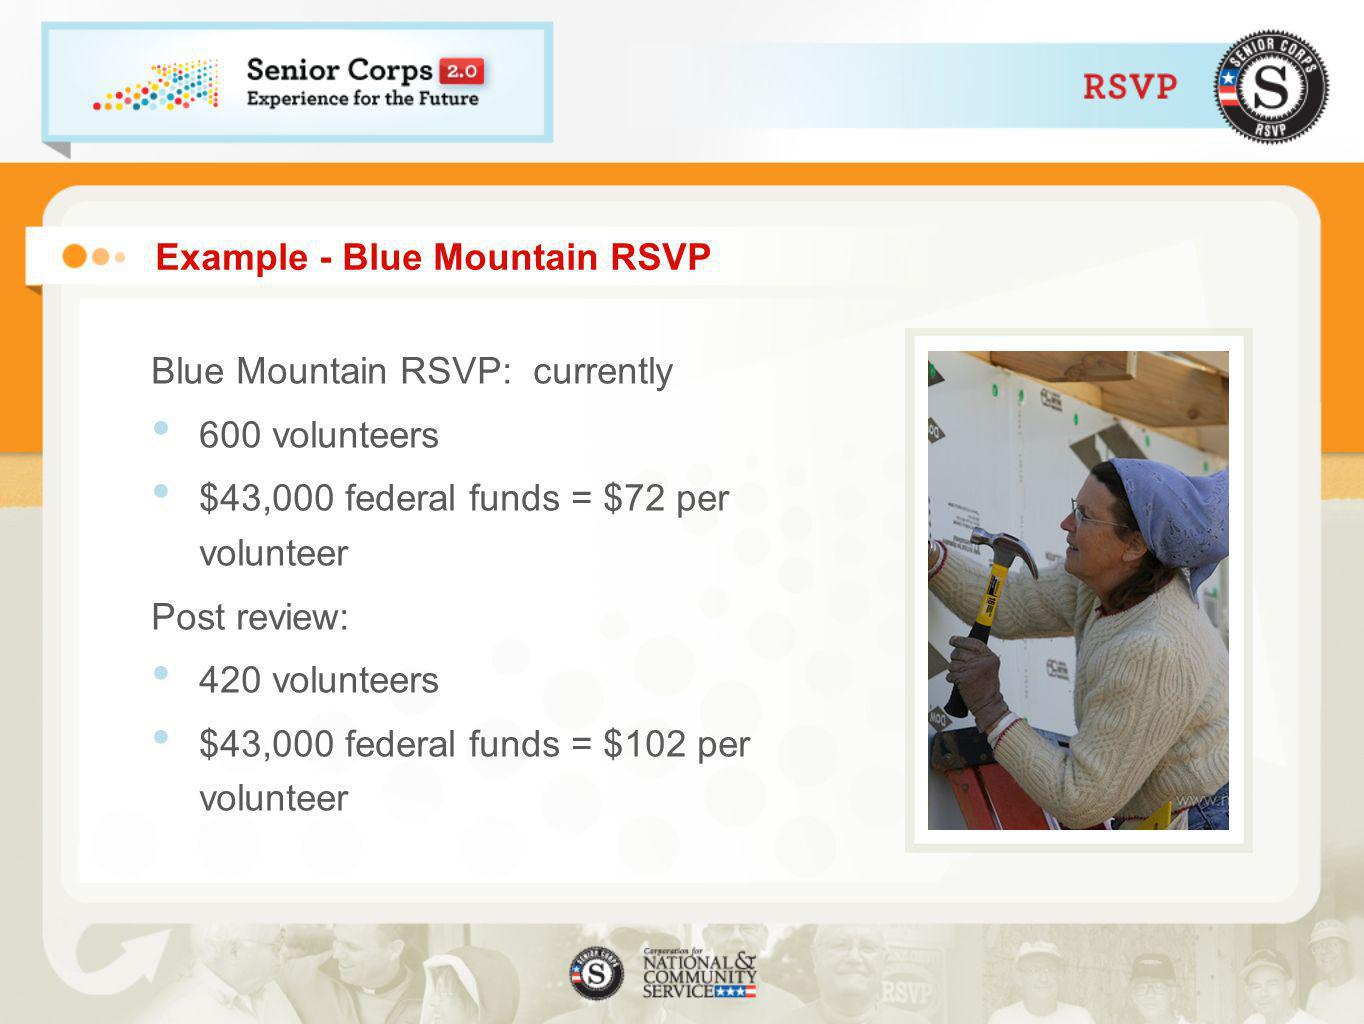 Example - Blue Mountain RSVP Blue Mountain RSVP: currently 600 volunteers $43,000 federal funds = $72 per volunteer Post review: 420 volunteers $43,000 federal funds = $102 per volunteer